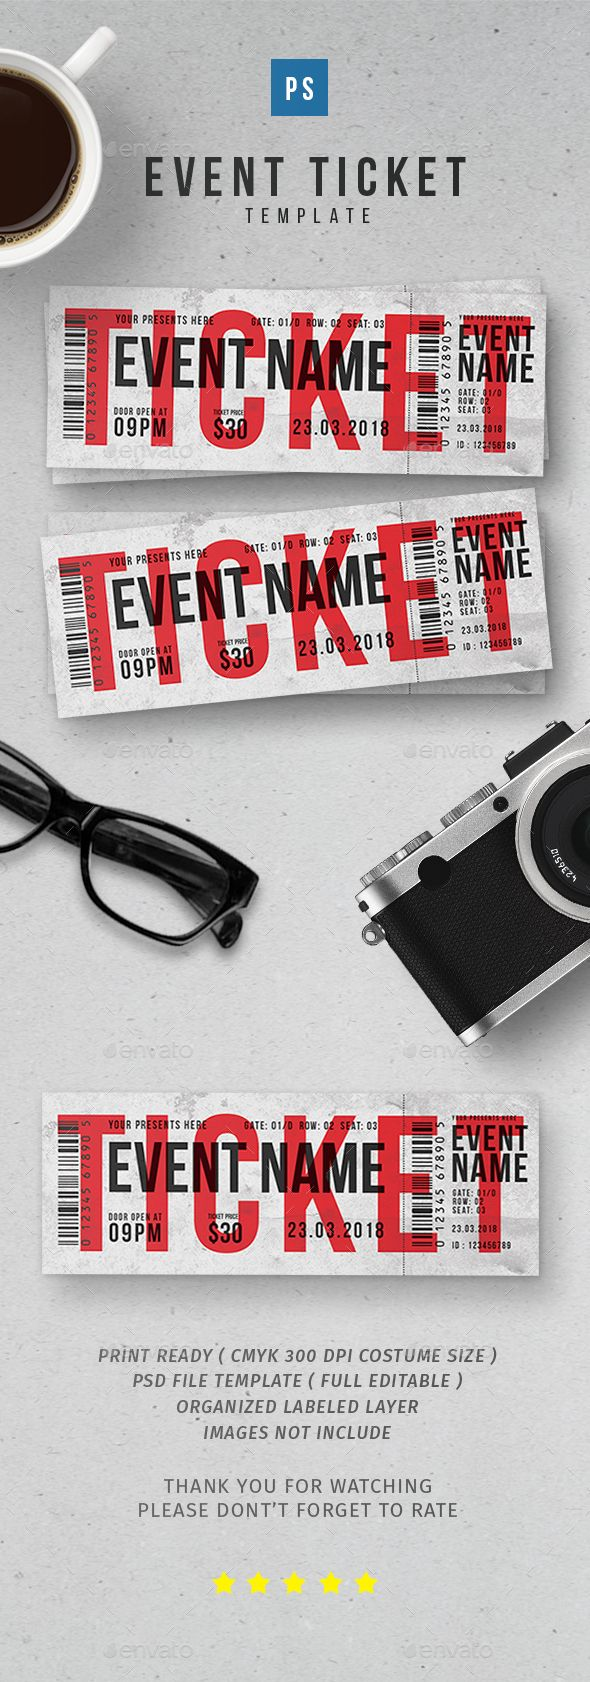 Event Ticket vol.2 — Photoshop PSD #5.5x2 #carnival • Available here ➝ https://graphicriver.net/item/event-ticket-vol2/20550983?ref=pxcr